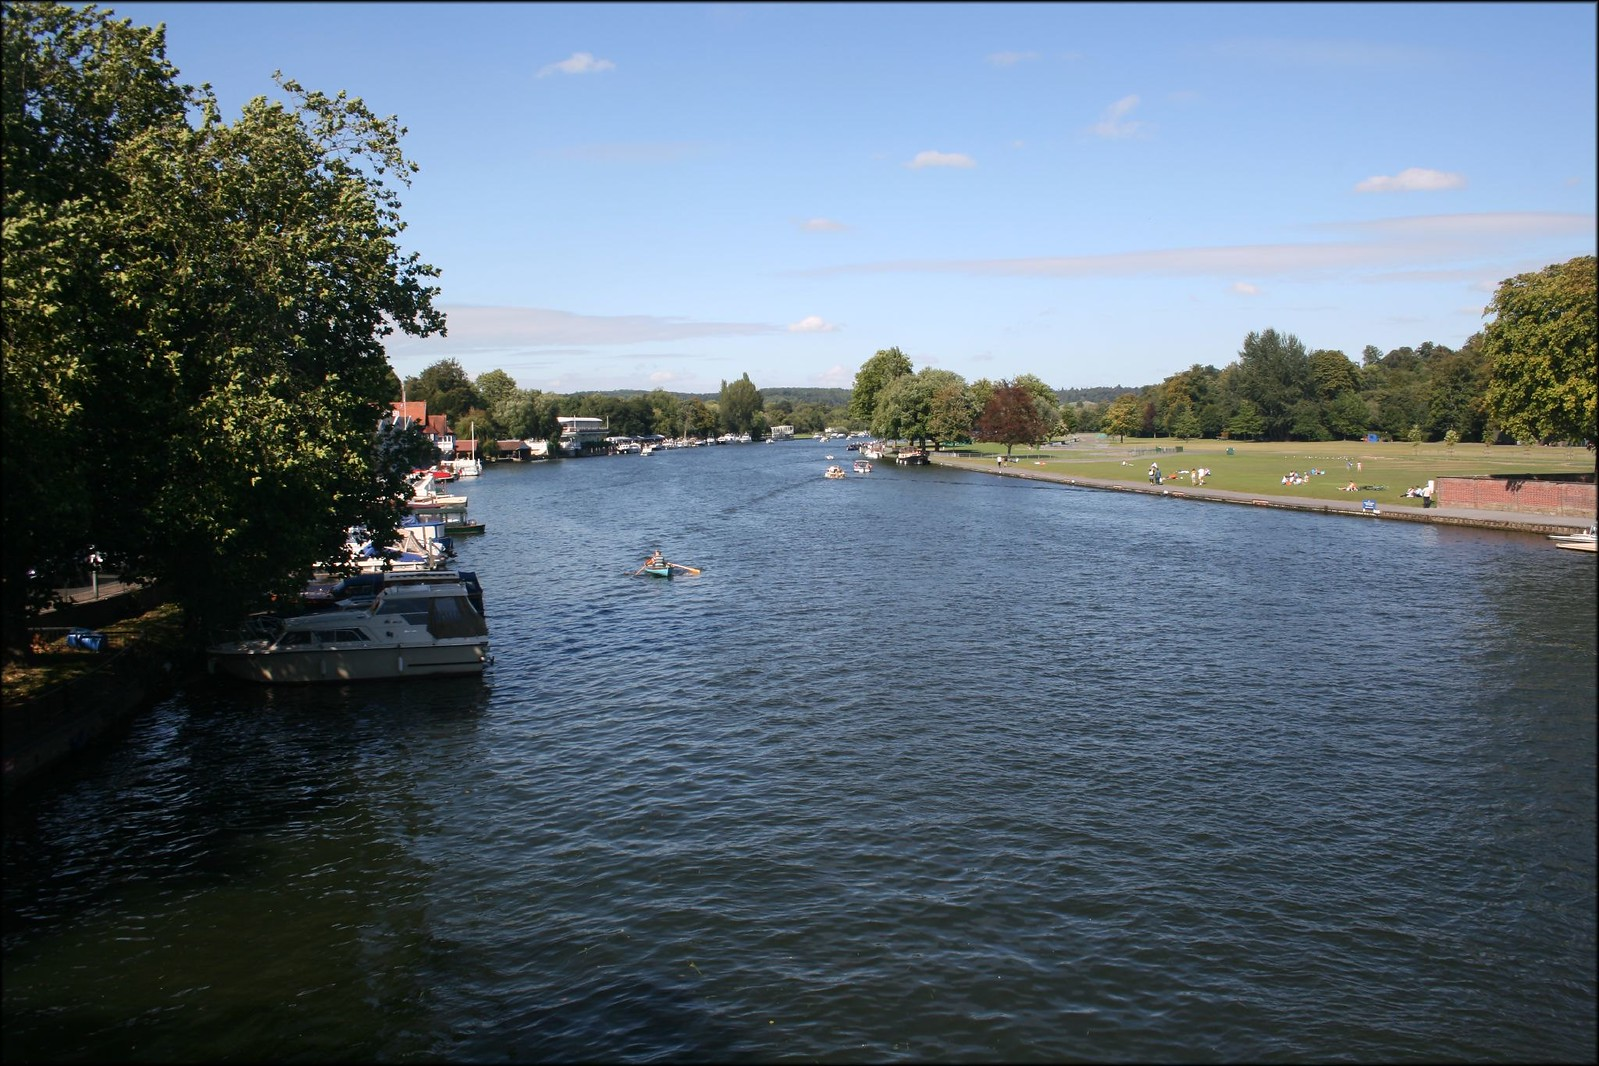 The Thames at Henley on Thames